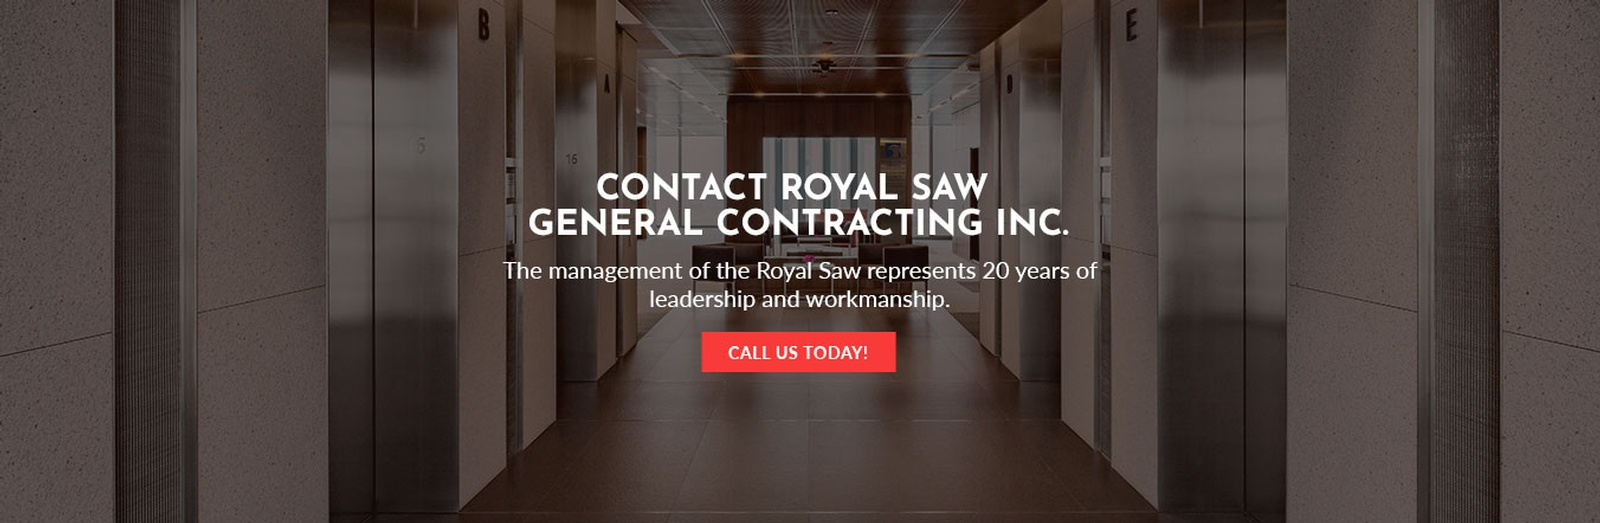 royal-saw-general-contracting